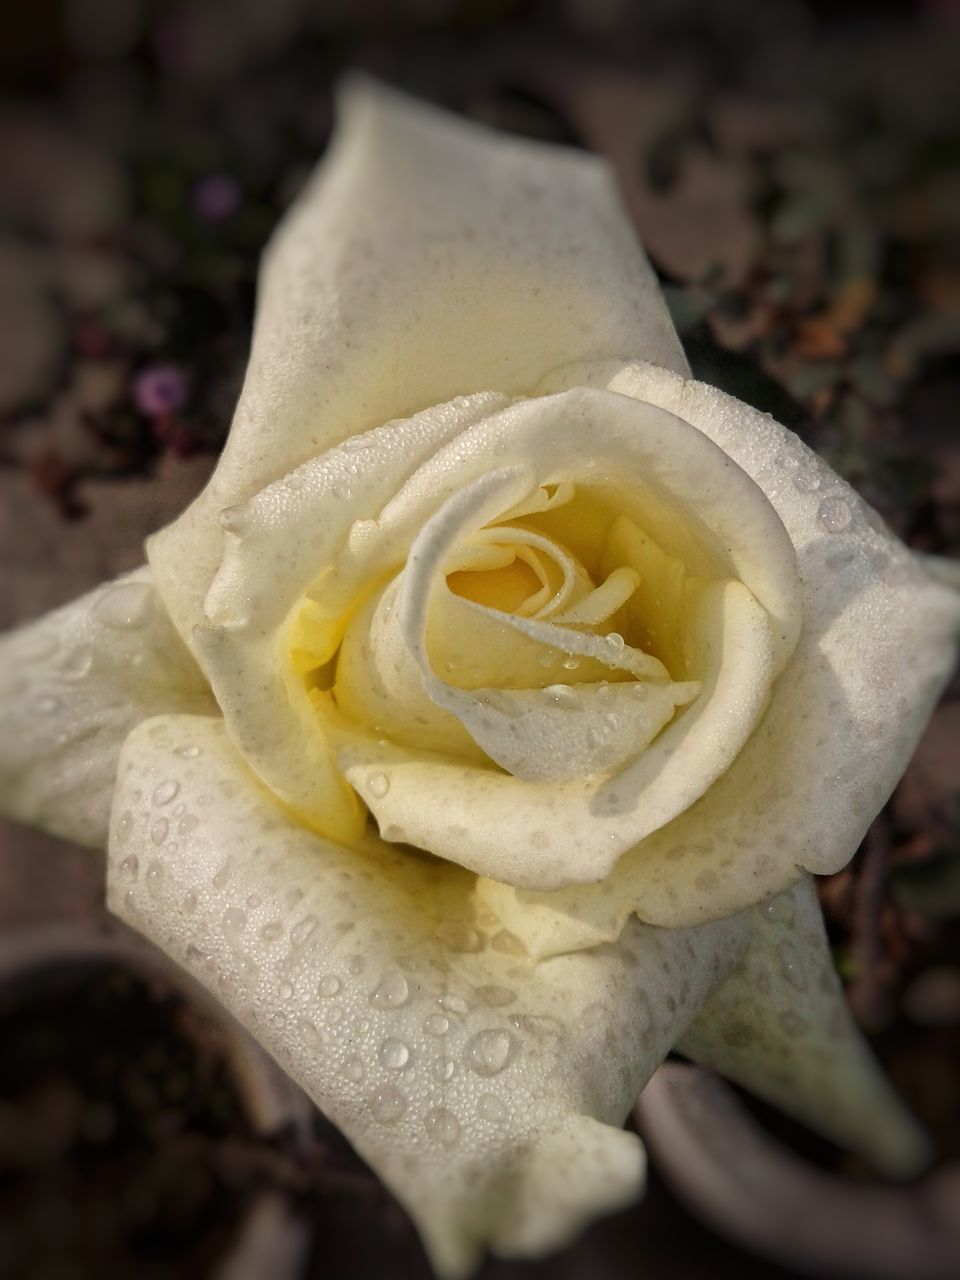 flower, petal, fragility, nature, beauty in nature, flower head, rose - flower, growth, freshness, close-up, plant, blossom, outdoors, yellow, no people, springtime, day, blooming, water